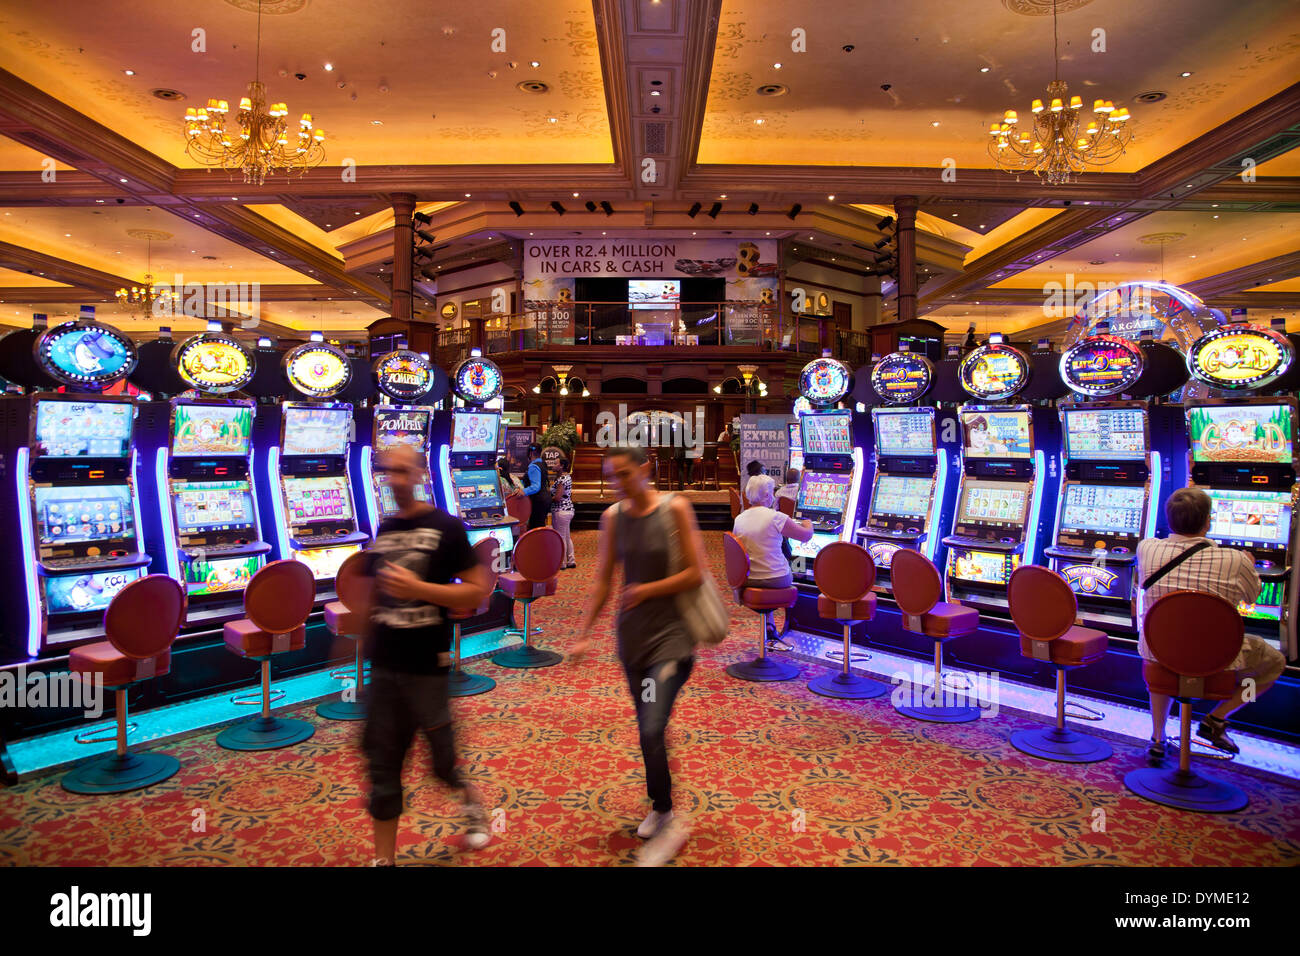 Goldreef city casino puzzles and arcade free casino games multiplayer